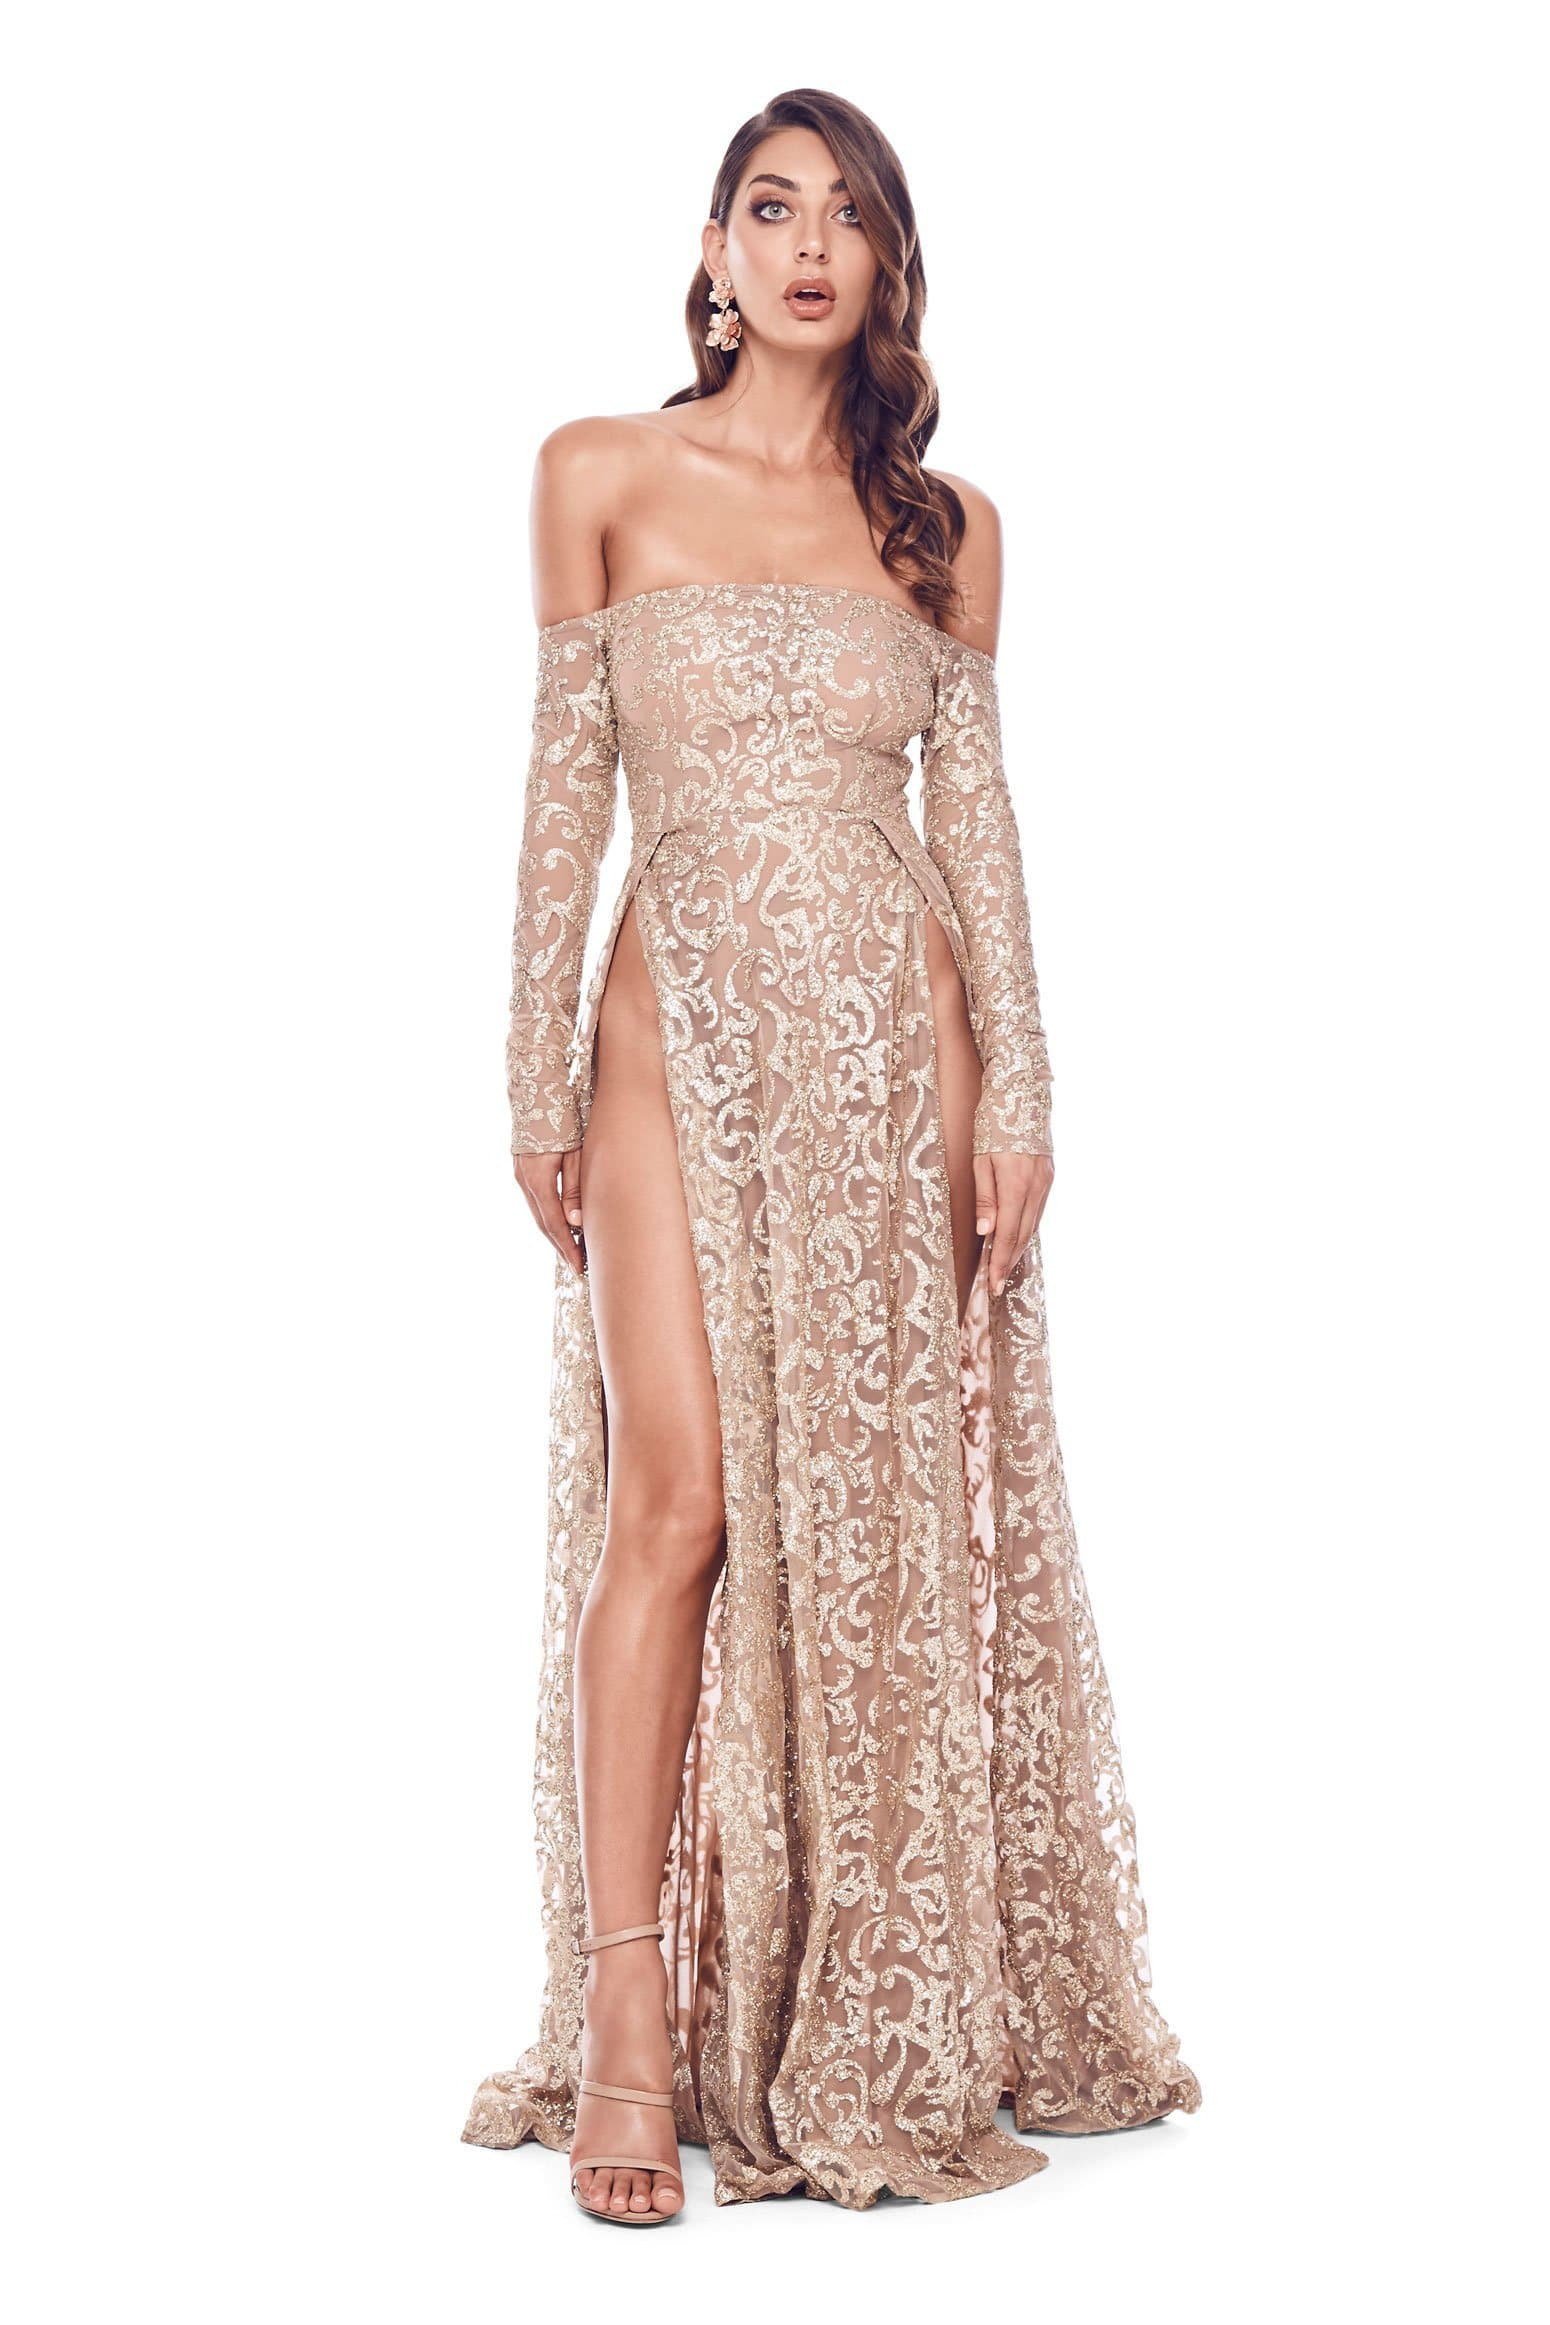 Flame - Gold Glitter Off-Shoulder Gown with Long Sleeves & Side Slit